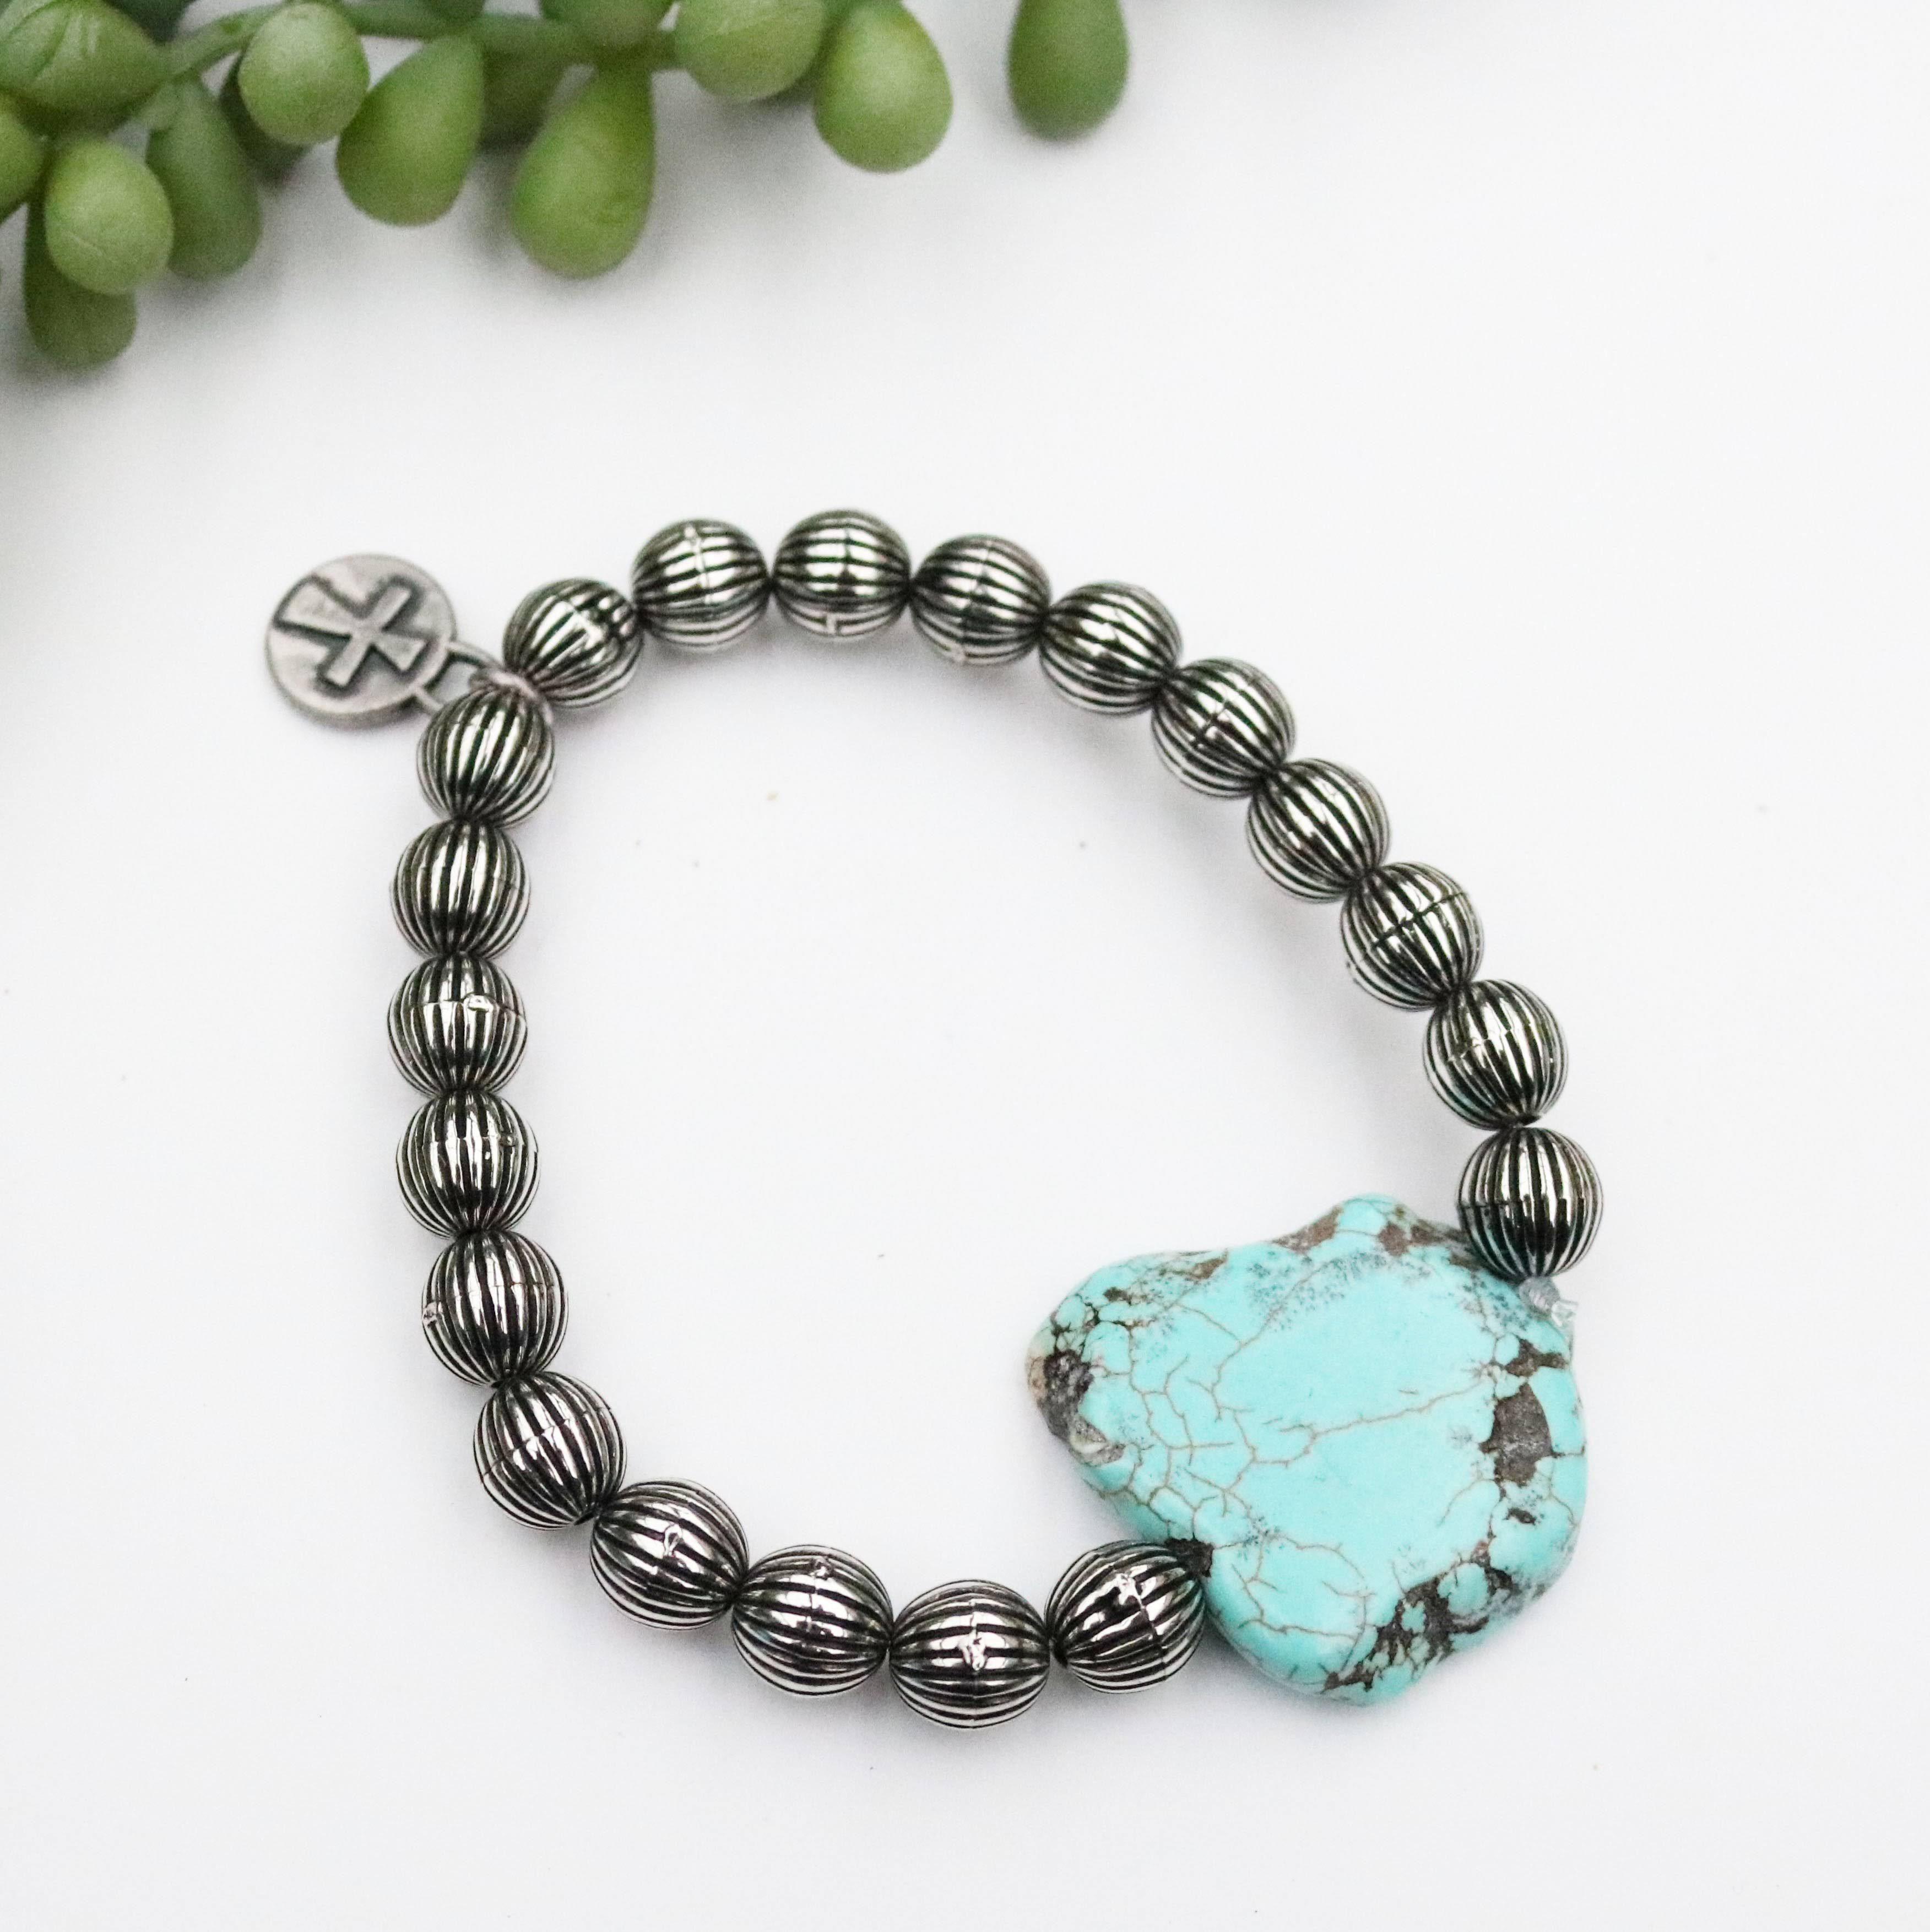 Ladies Melon Bead with Turquoise Slab Bracelet - BR509